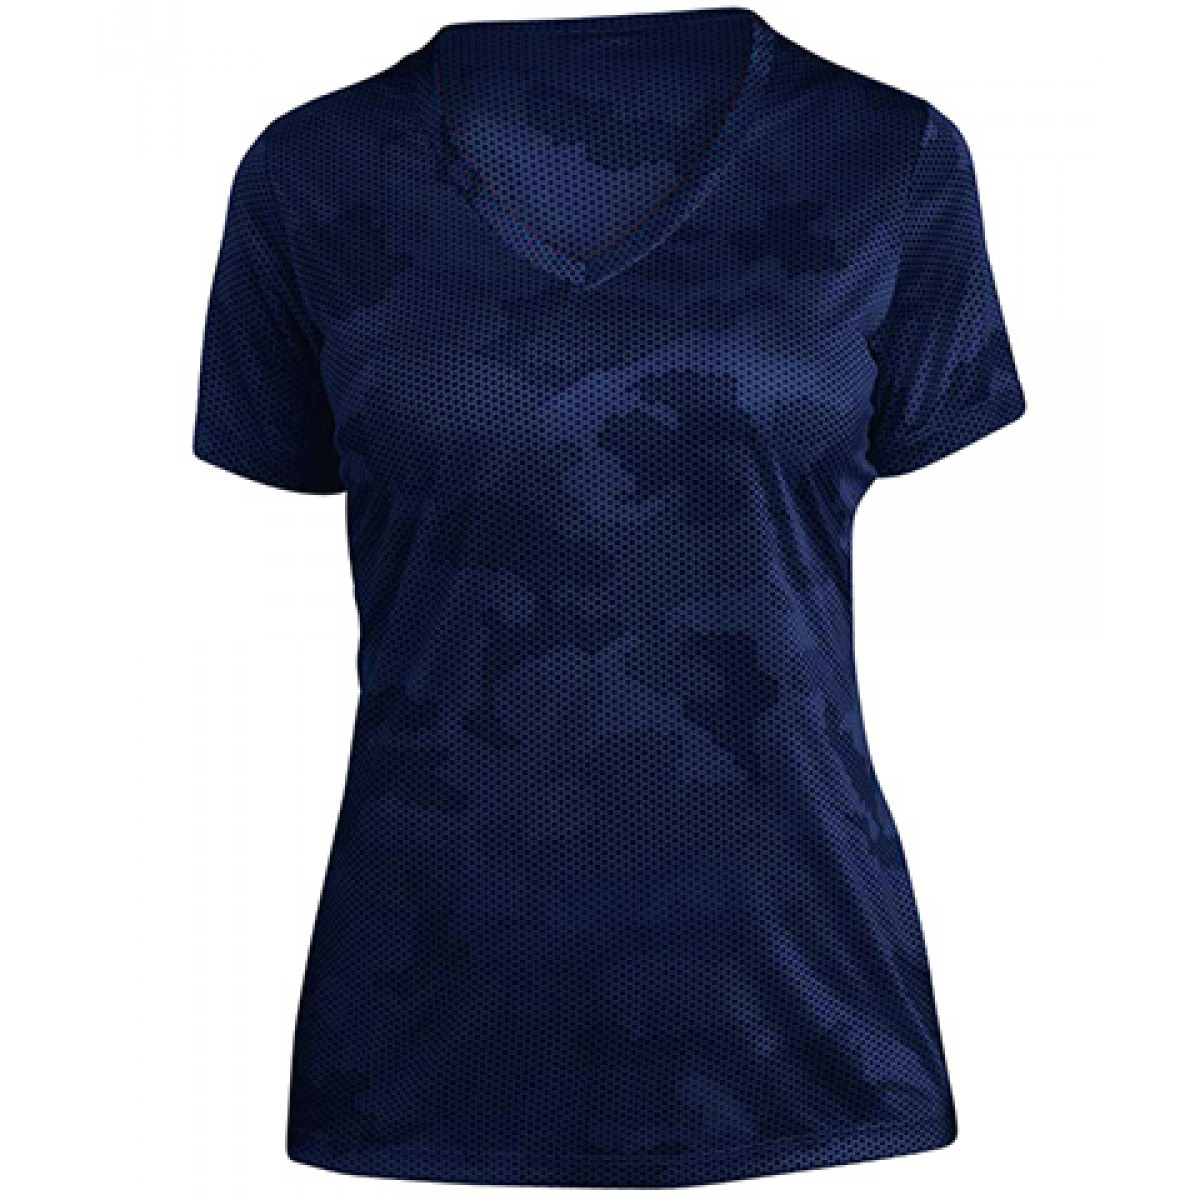 Ladies CamoHex V-Neck Tee-Royal Blue-XS